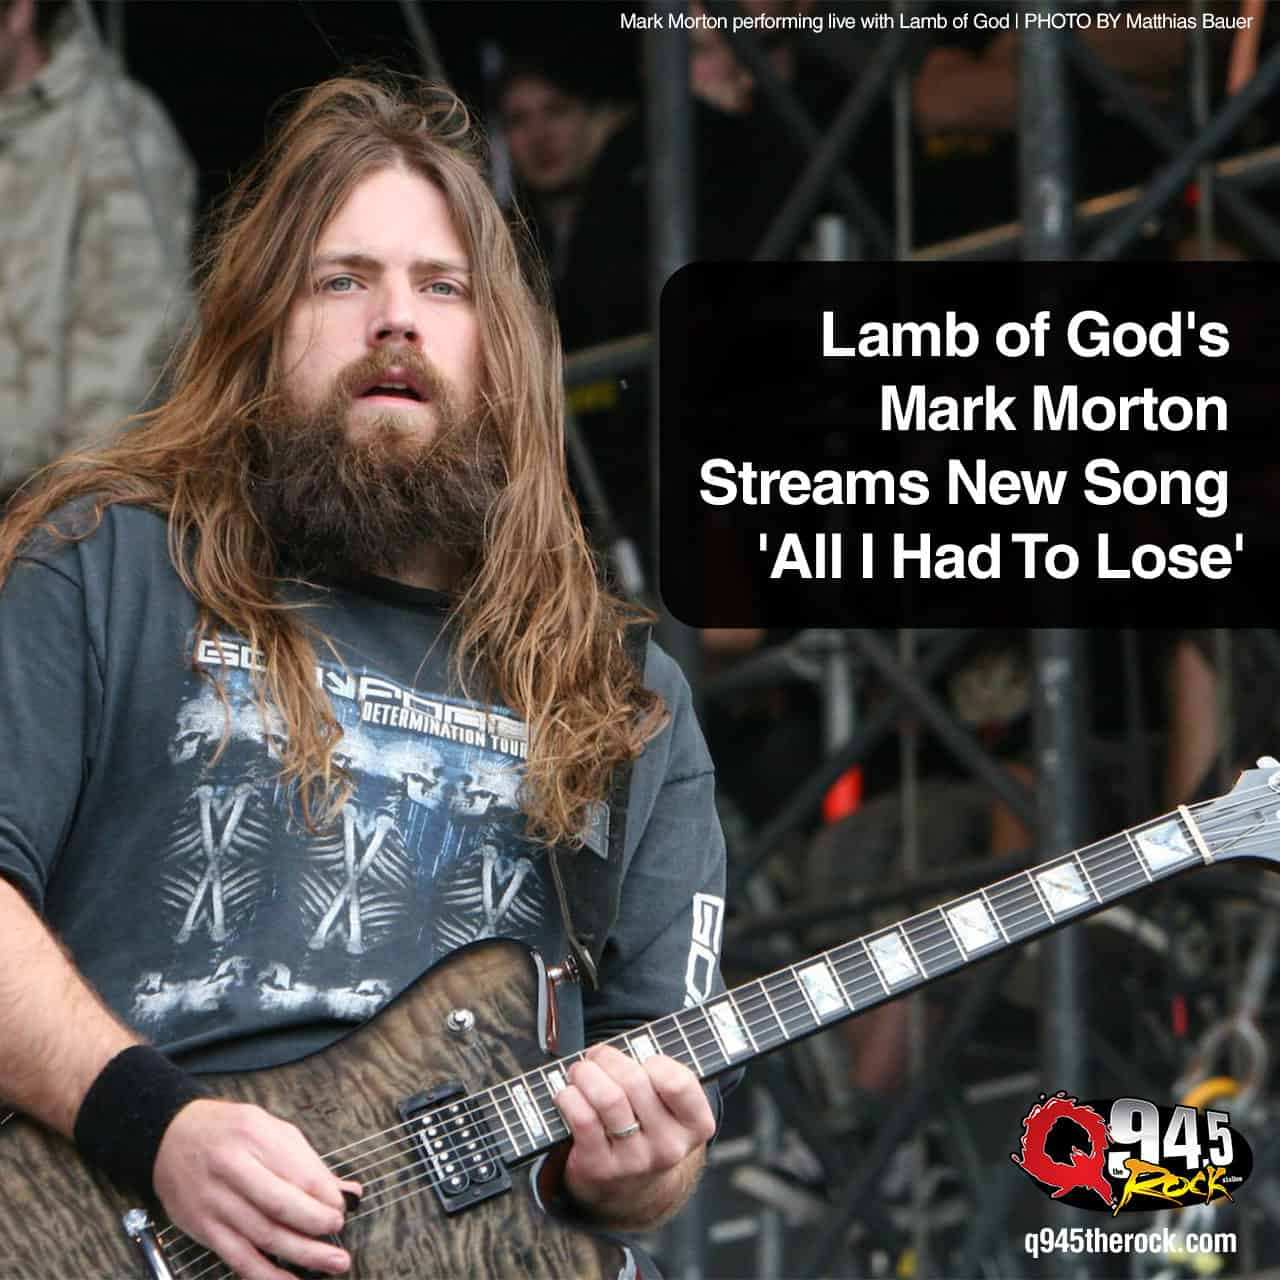 Lamb of God's Mark Morton Streams New Song 'All I Had To Lose' -  KFRQ Q94.5